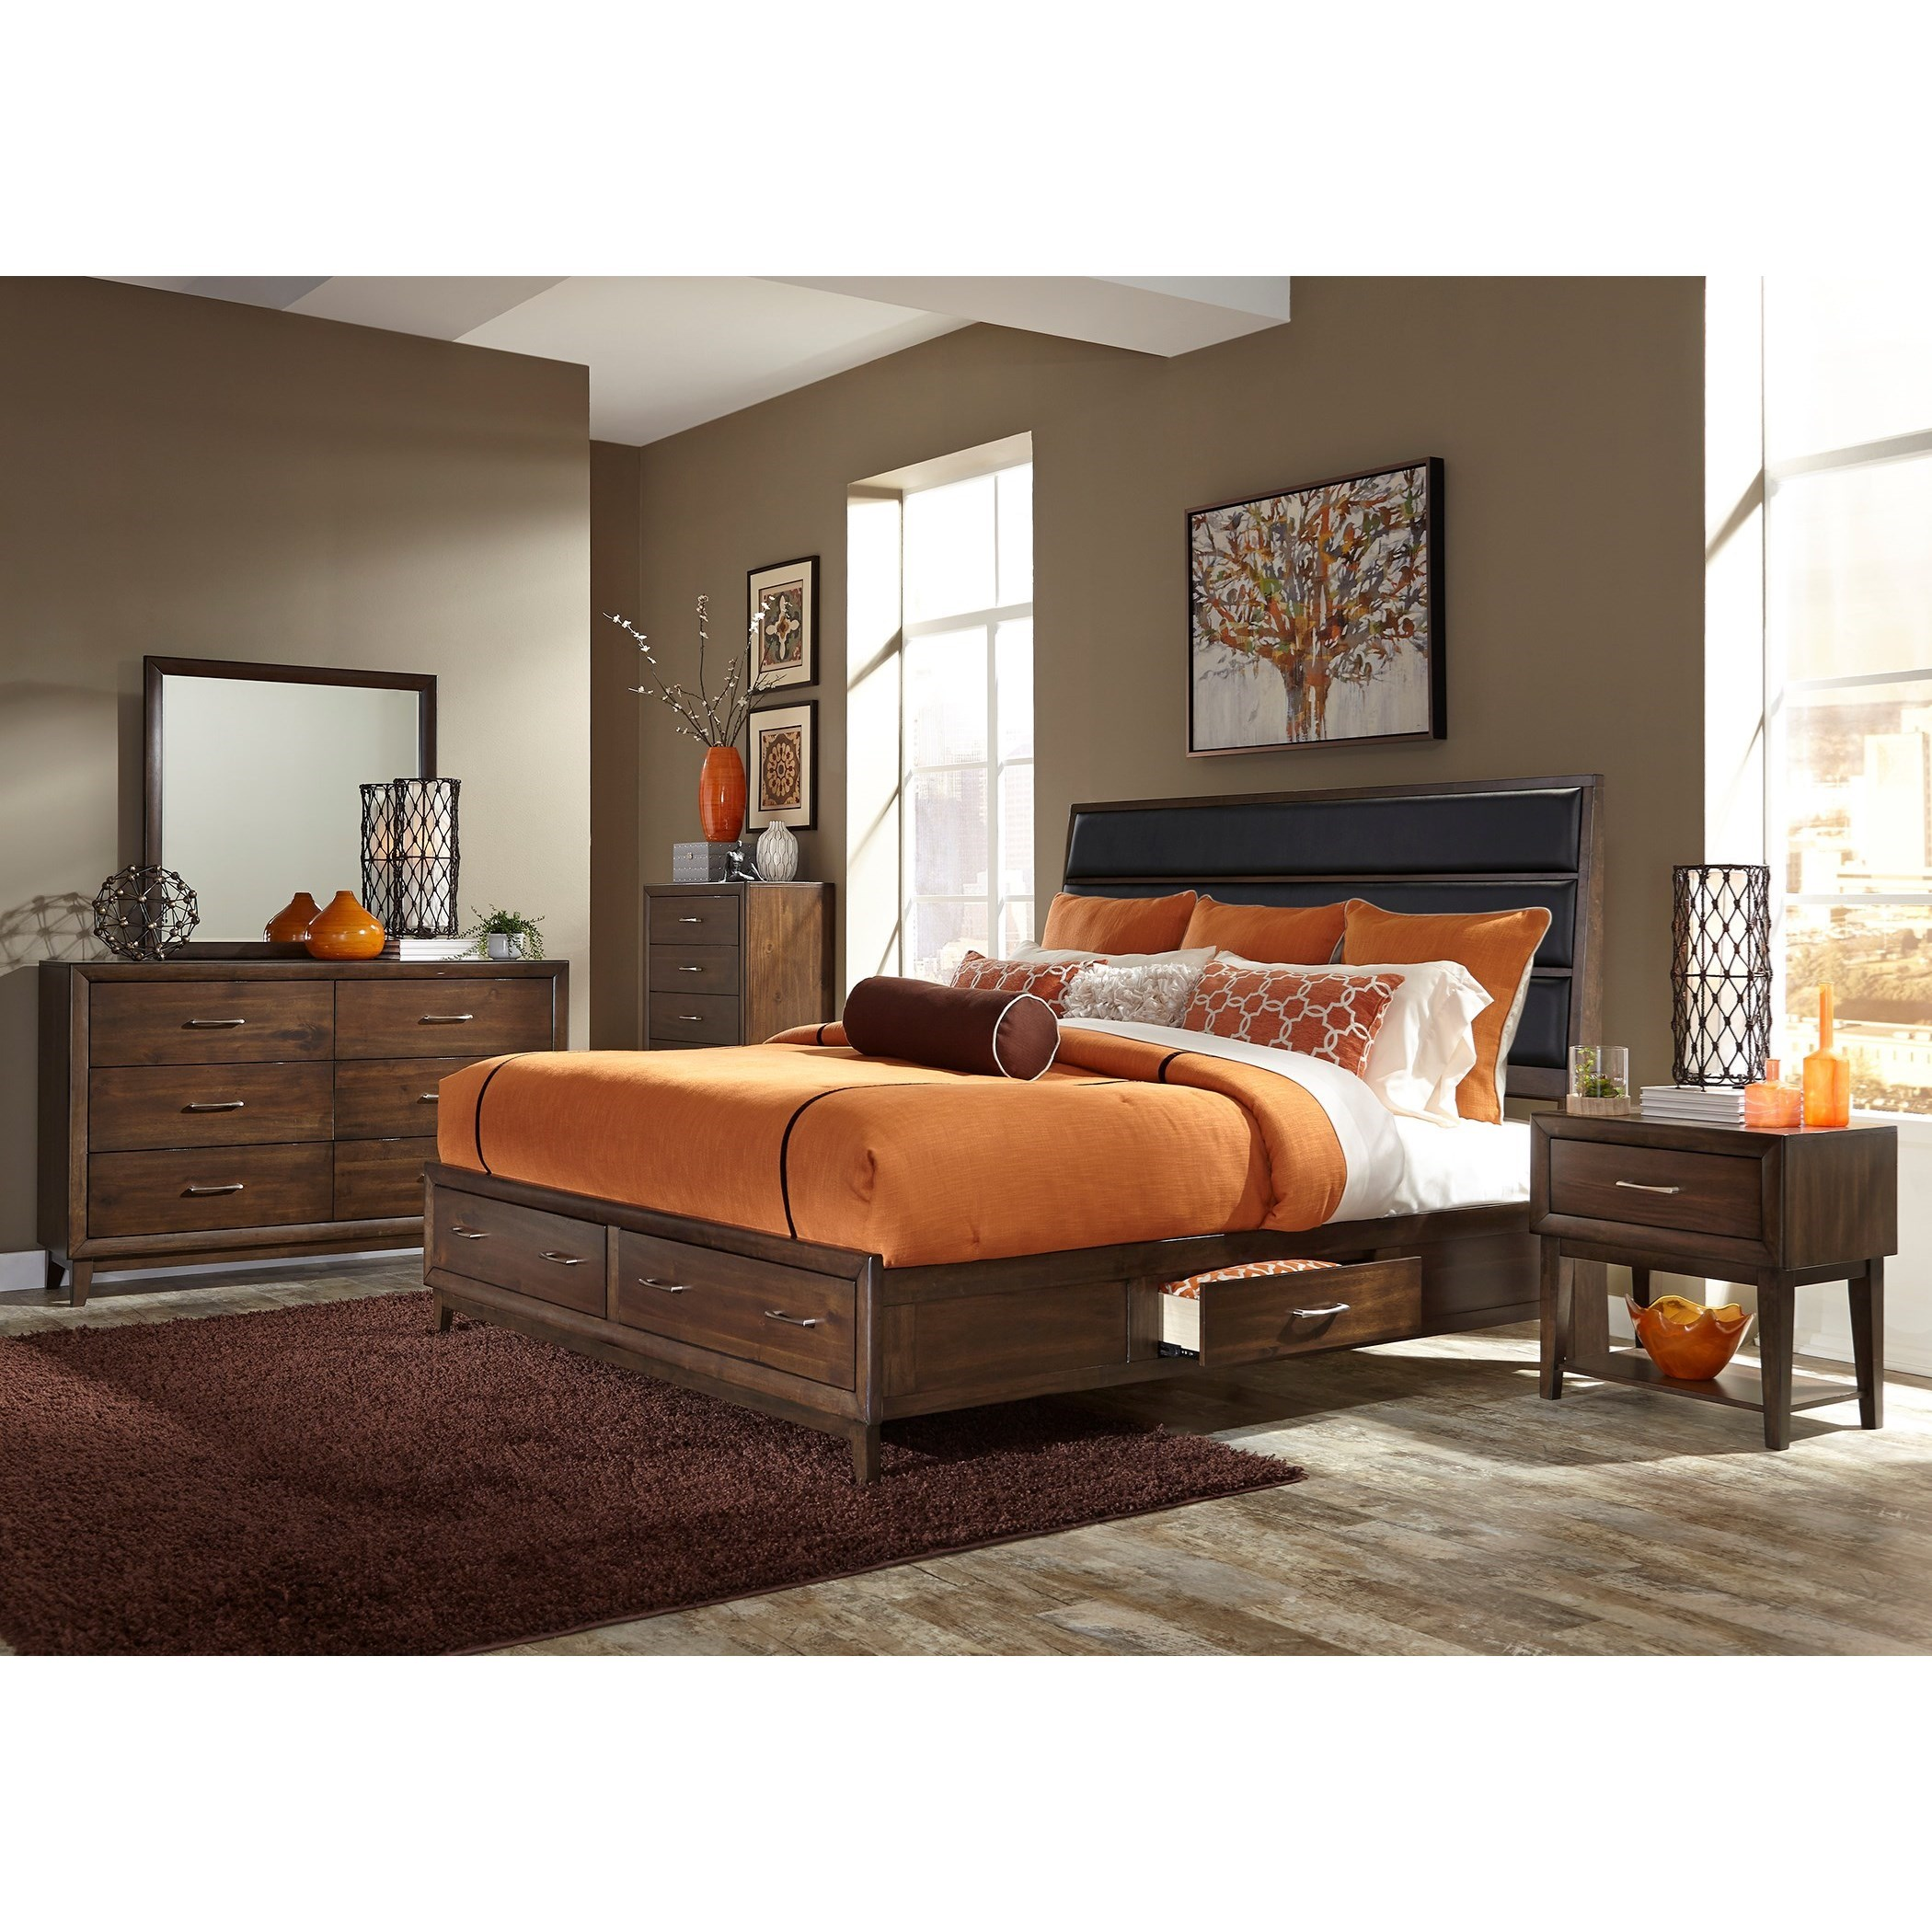 Liberty Furniture Hudson Square Bedroom King Bedroom Group - Item Number: 365-BR-KUSDMCN